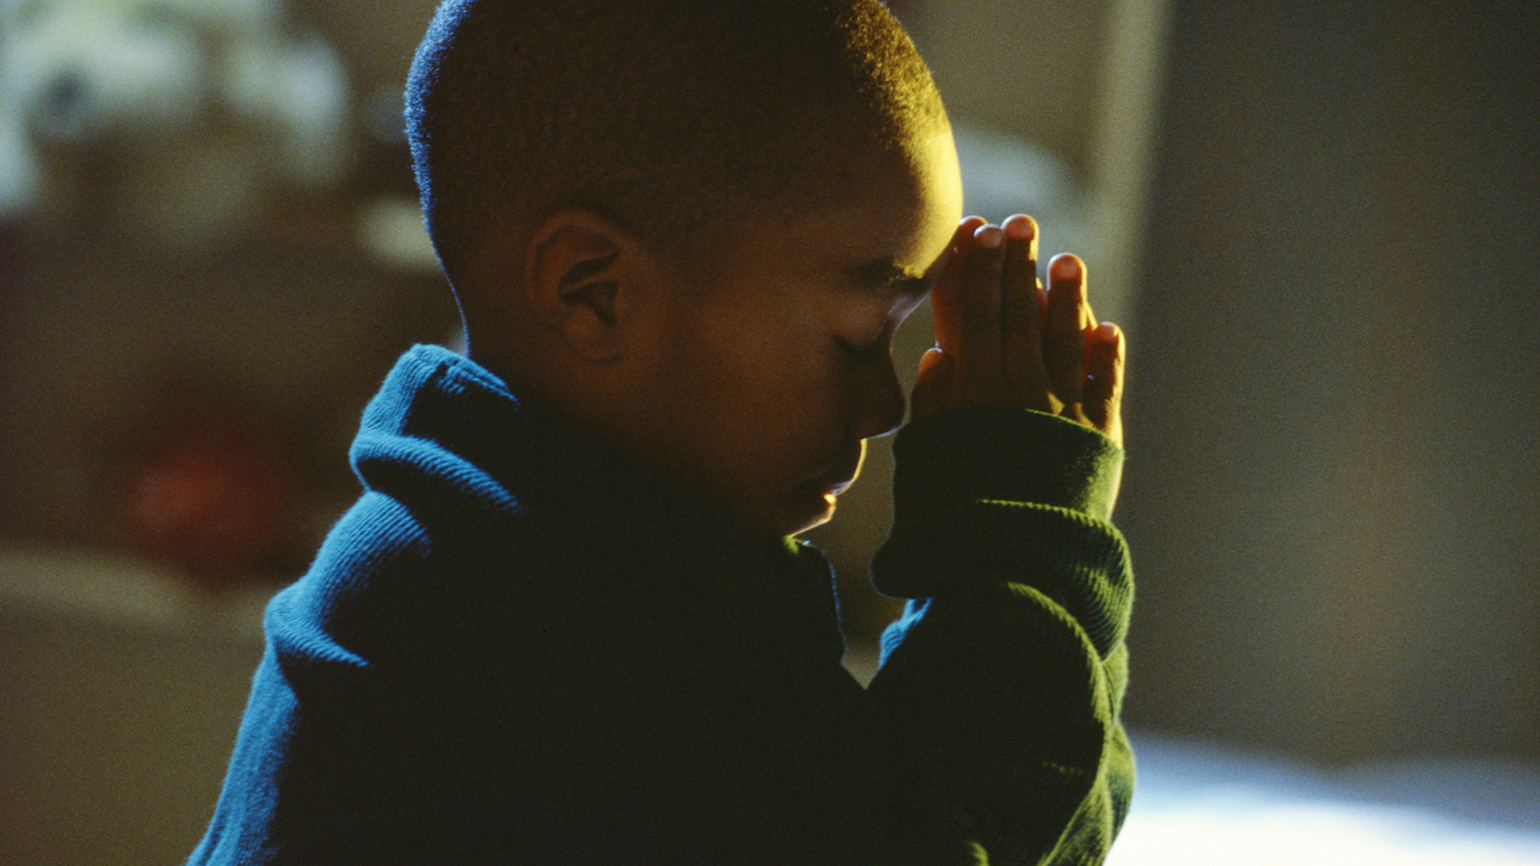 A small child prayer